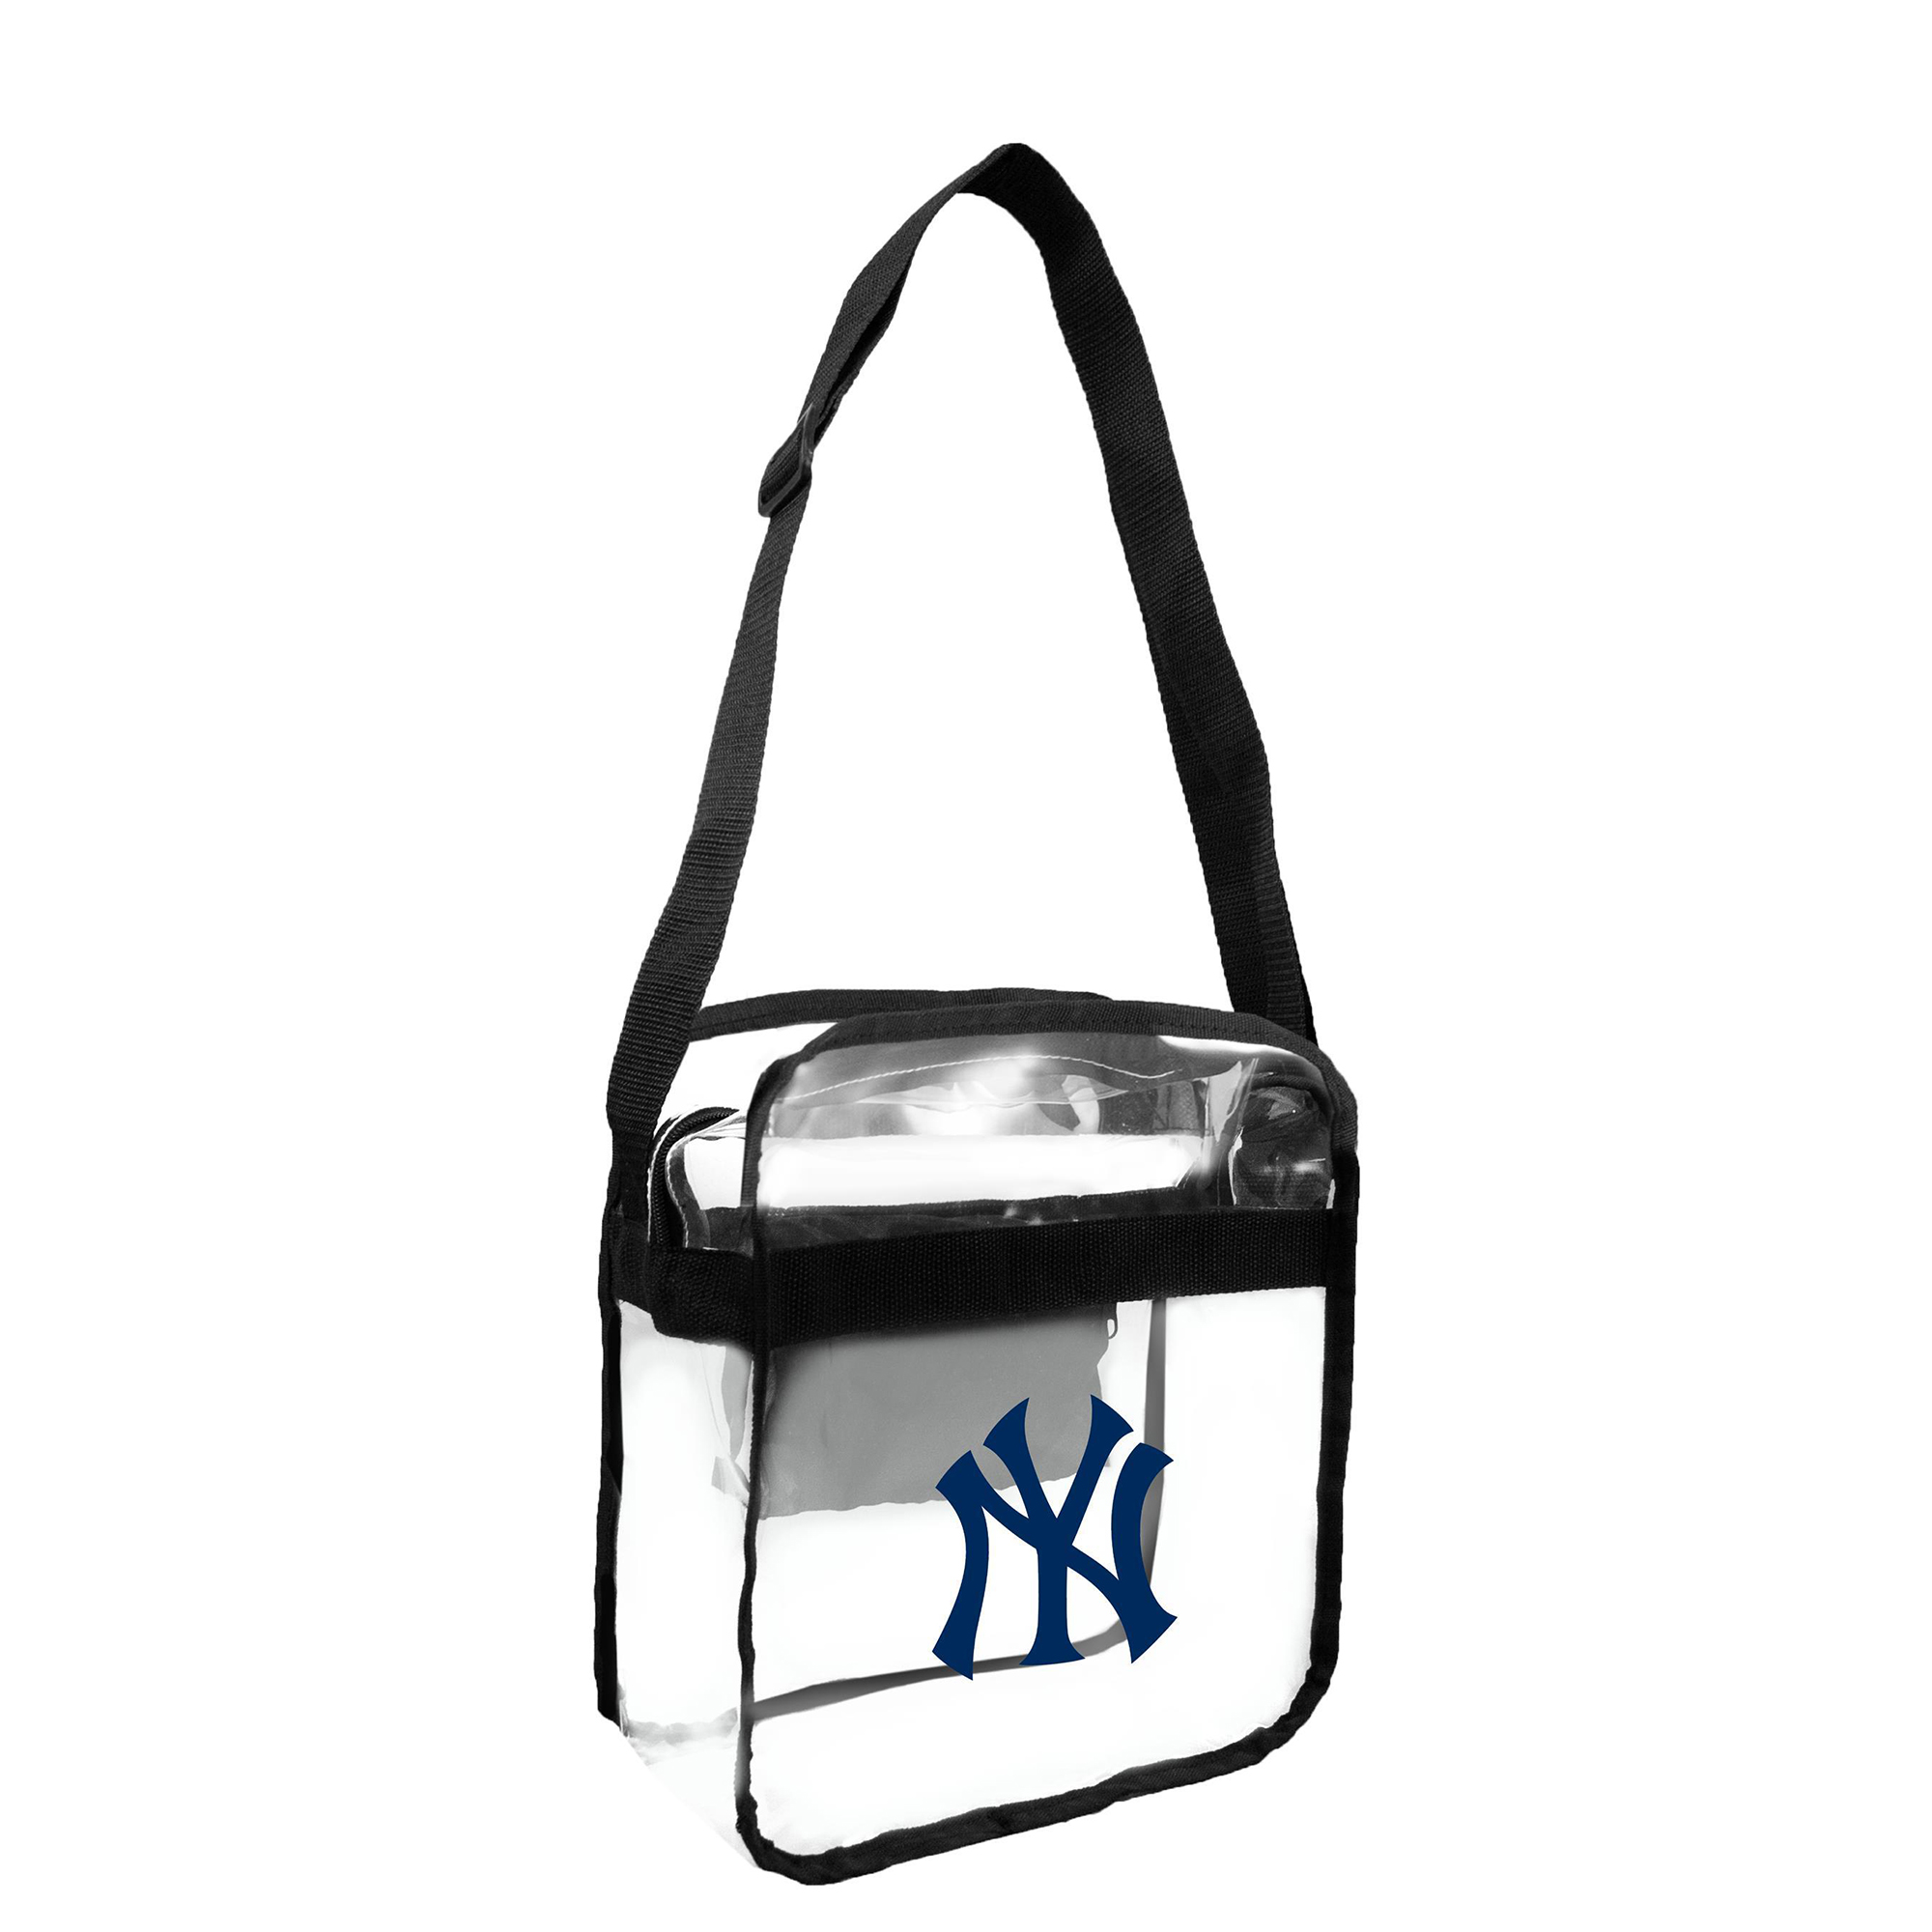 Little Earth - MLB Clear Carryall Cross Body Bag, New York Yankees